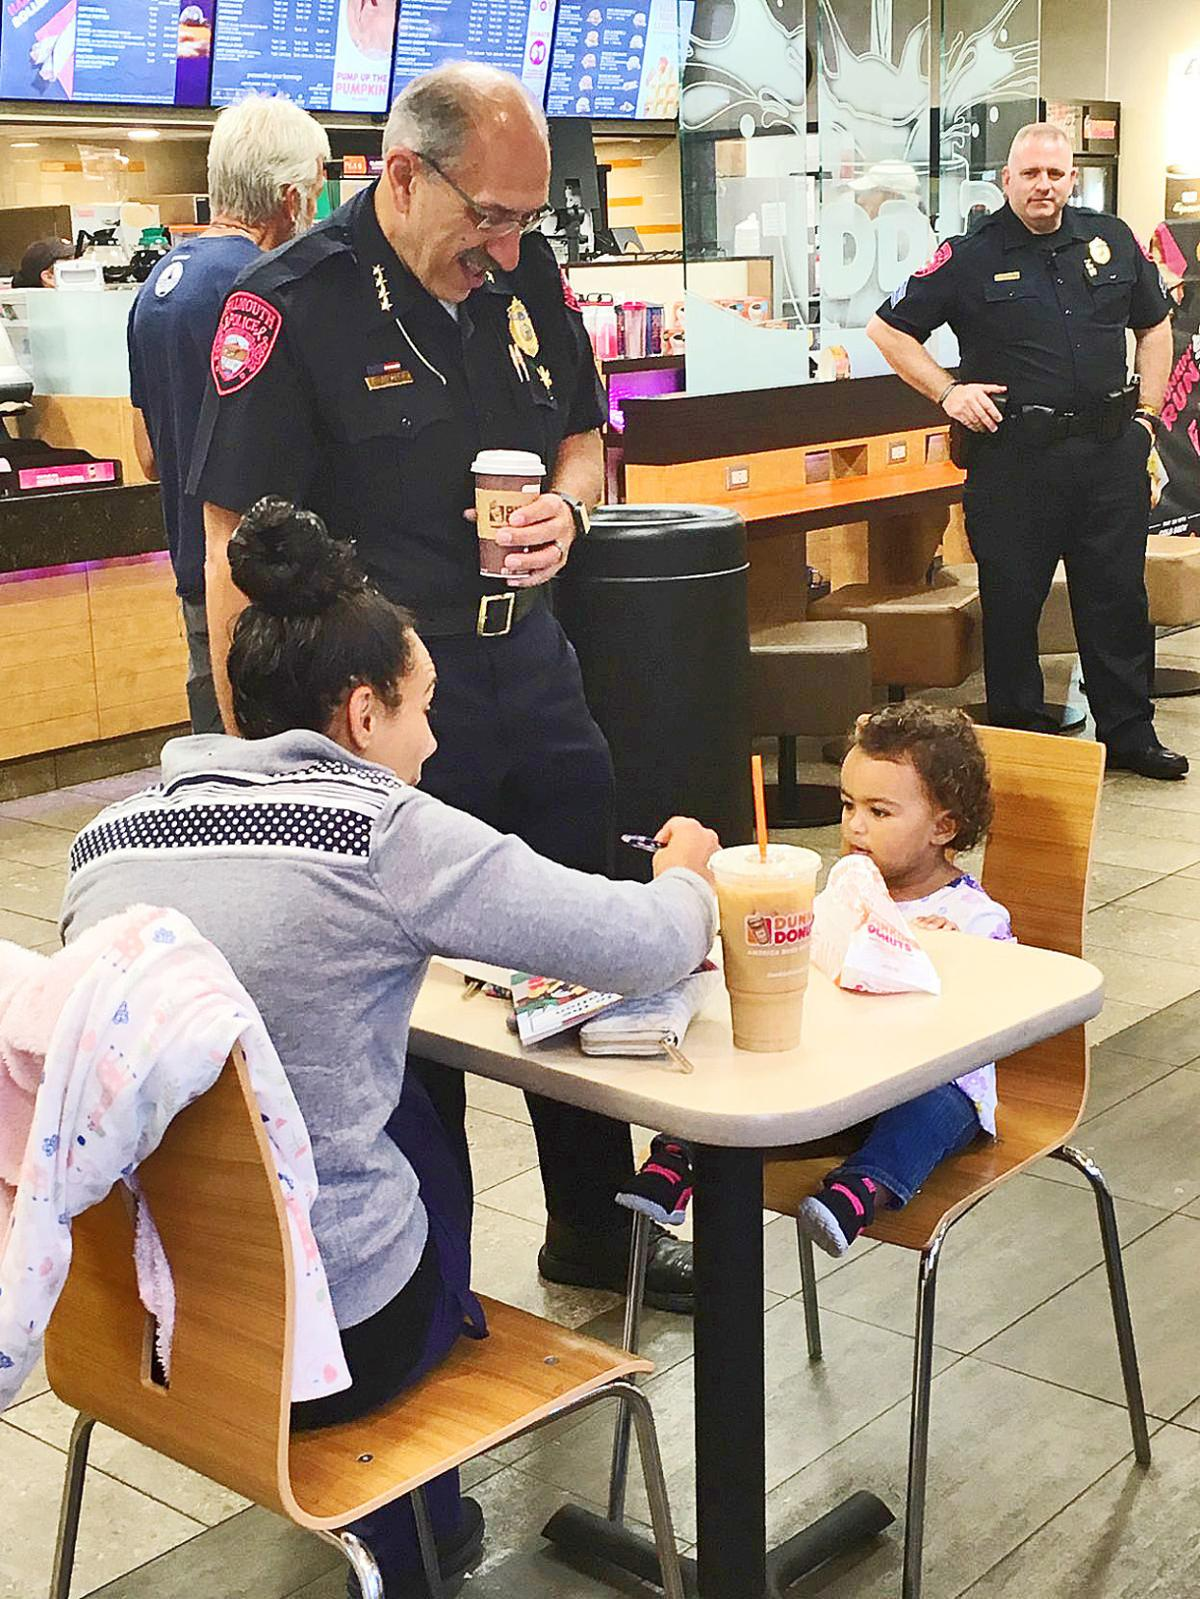 Falmouth Police Hold Meet And Greet At Dunkin Donuts Falmouth